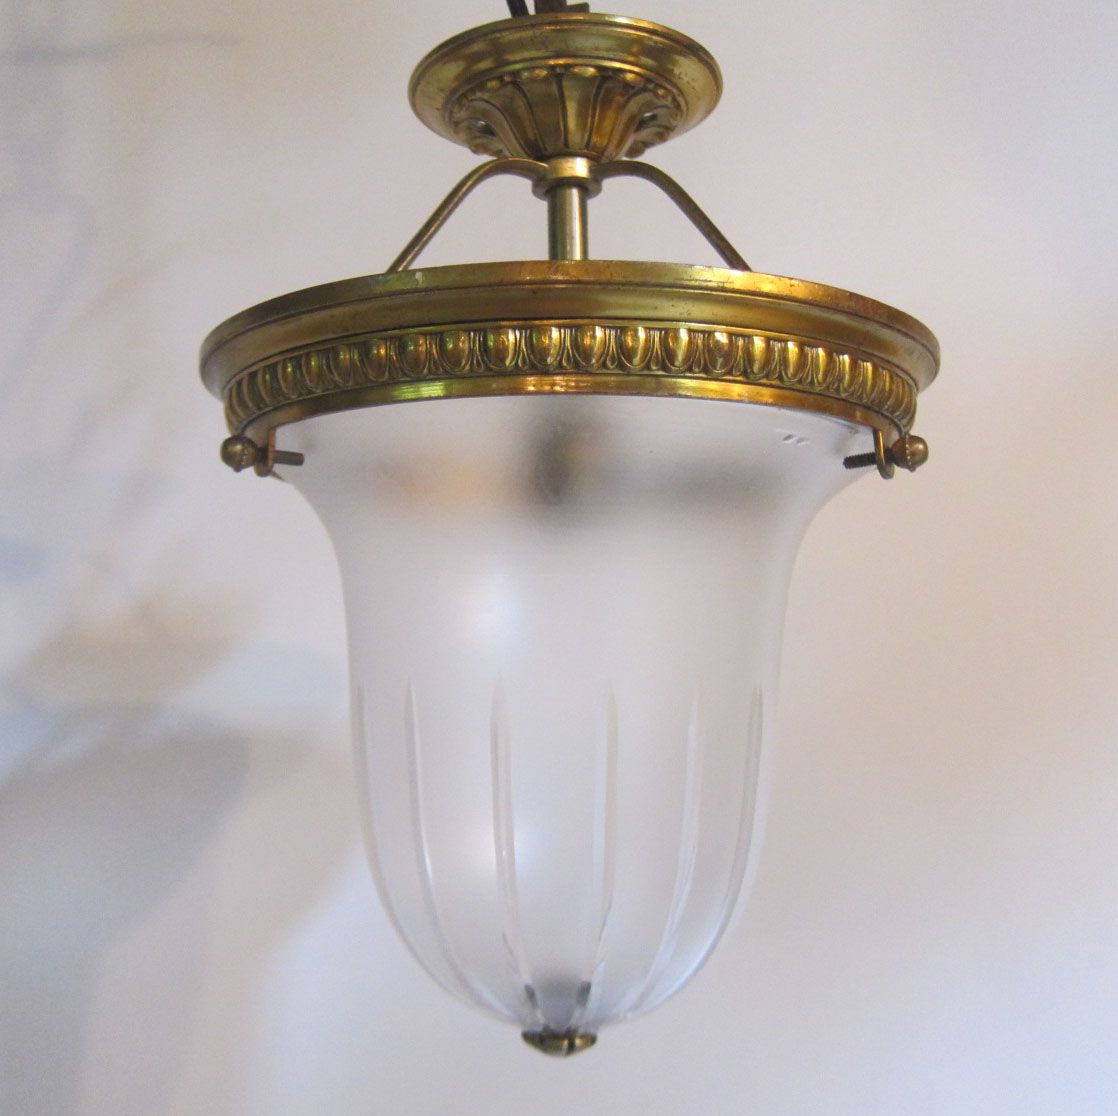 English Close Fitting Ceiling Light In The Original Gilt Brass Finish Complete With Period Satin